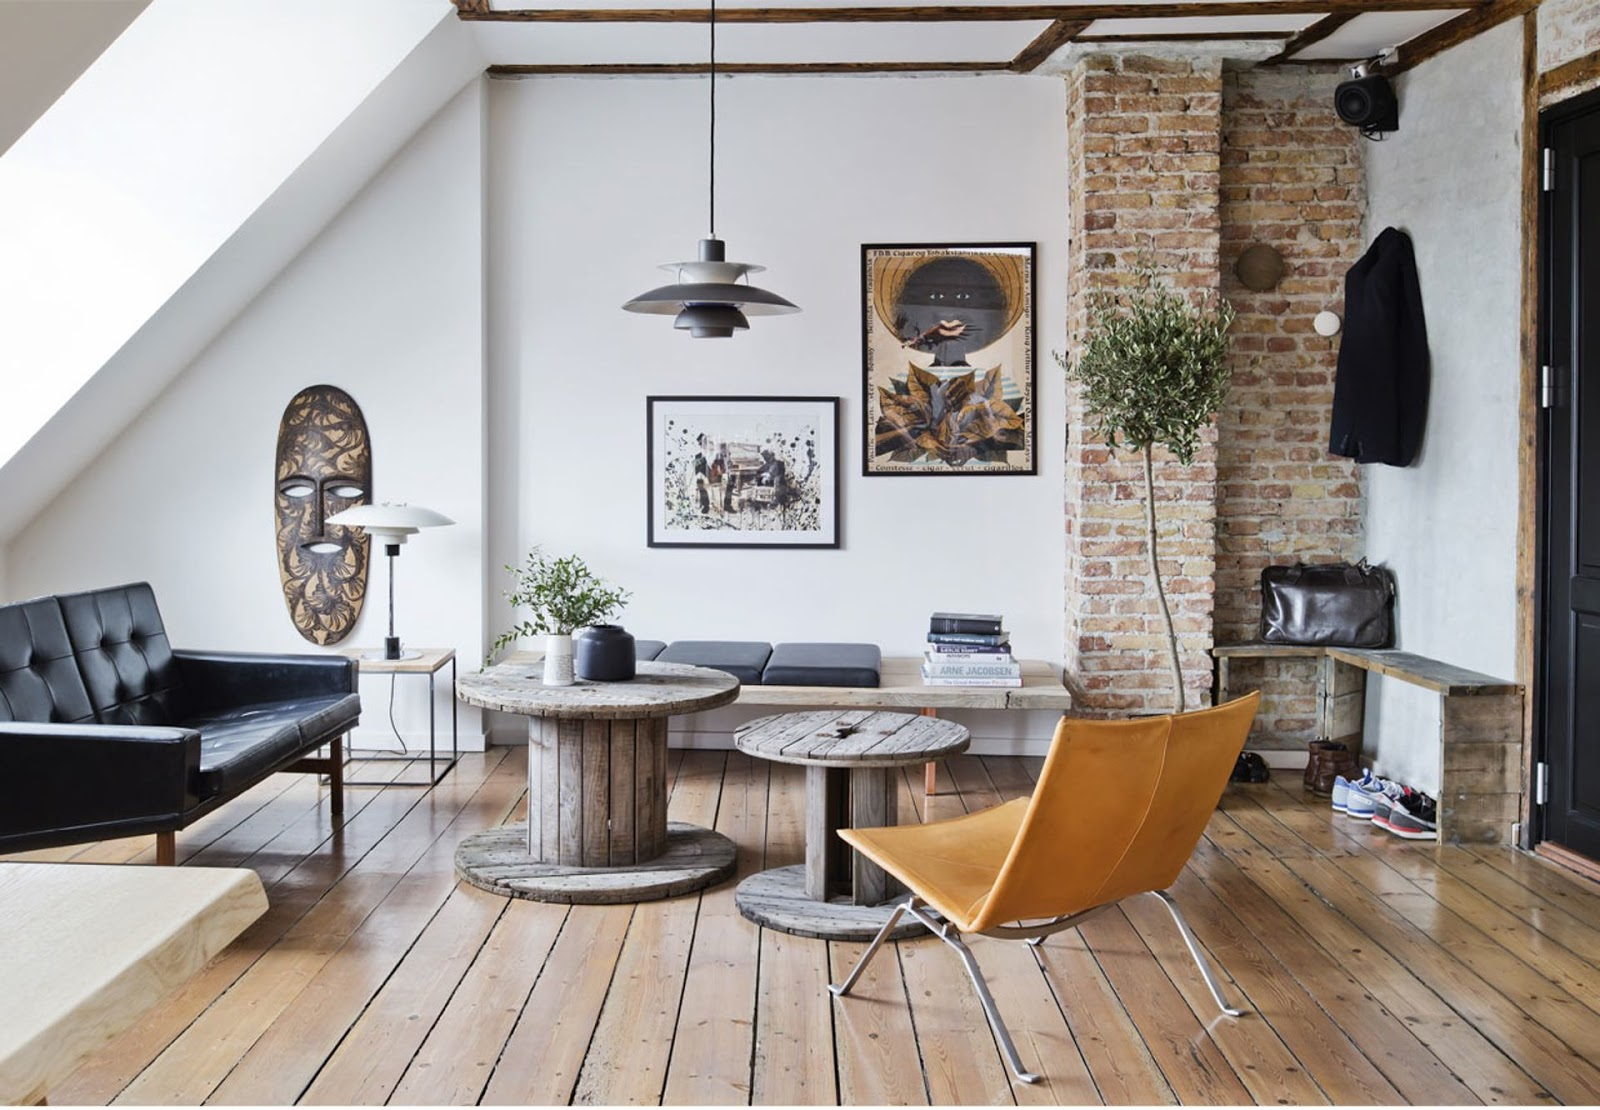 Apartments With Exposed Brick Chic Apartment With Exposed Brick And Rustic Wood Shockblast